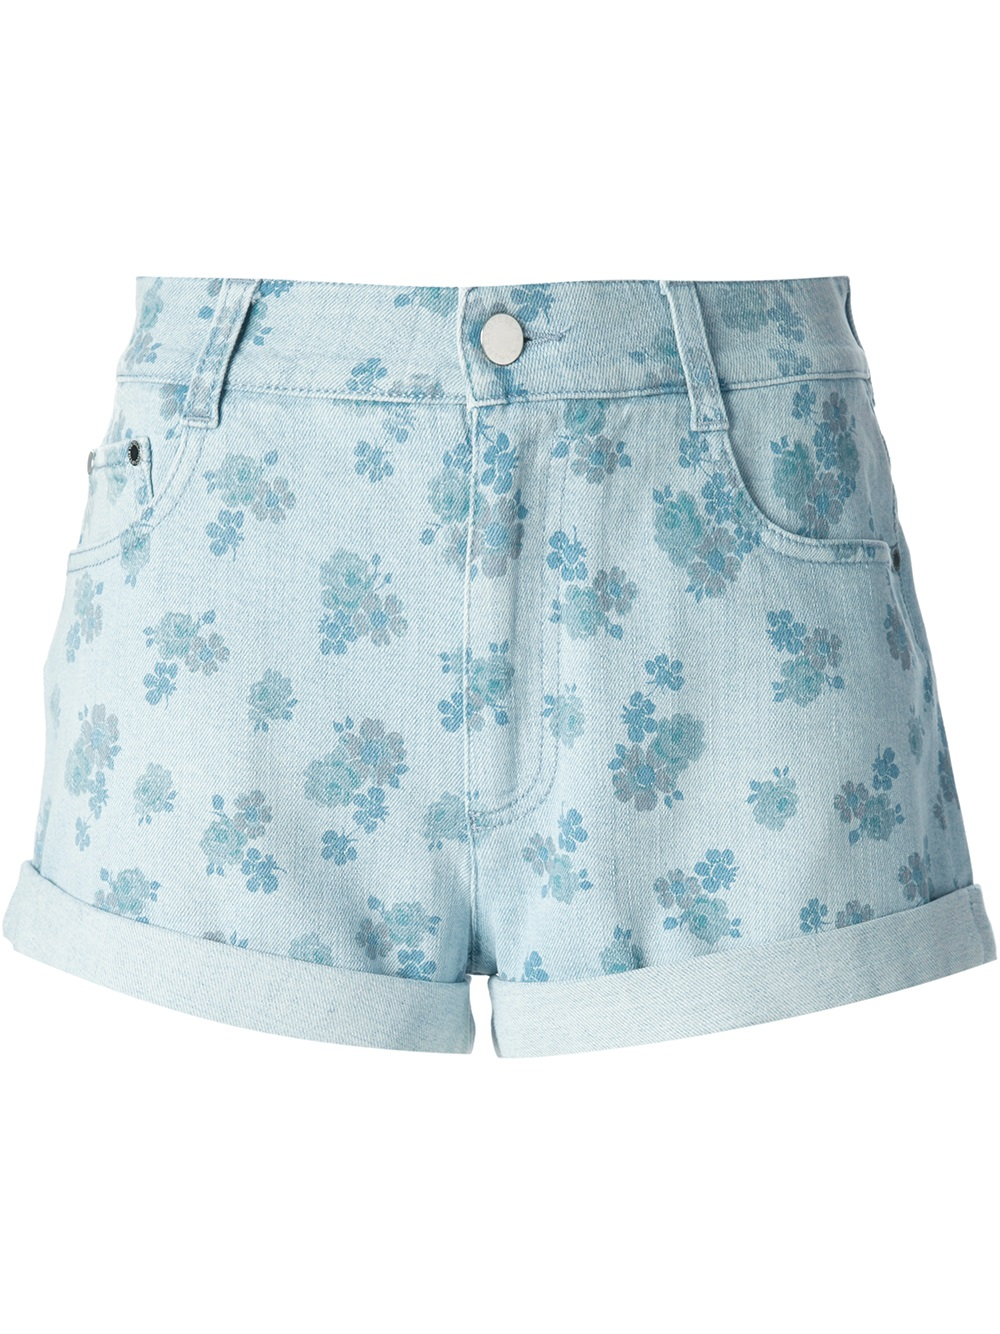 Find great deals on eBay for mens floral print shorts. Shop with confidence.